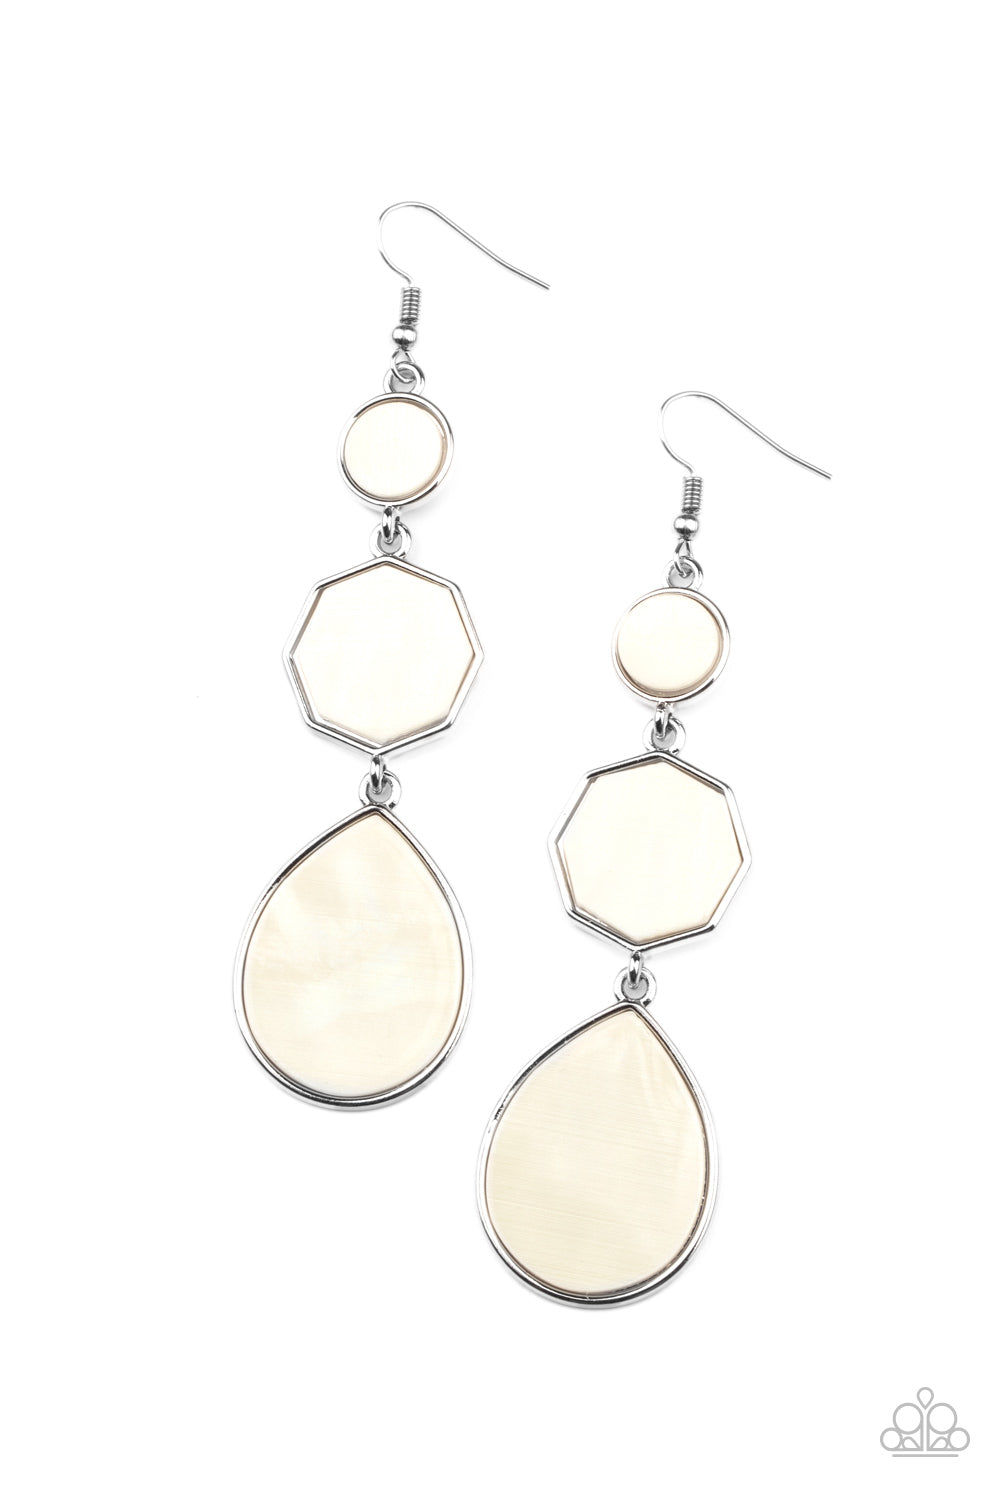 five-dollar-jewelry-progressively-posh-white-earrings-paparazzi-accessories